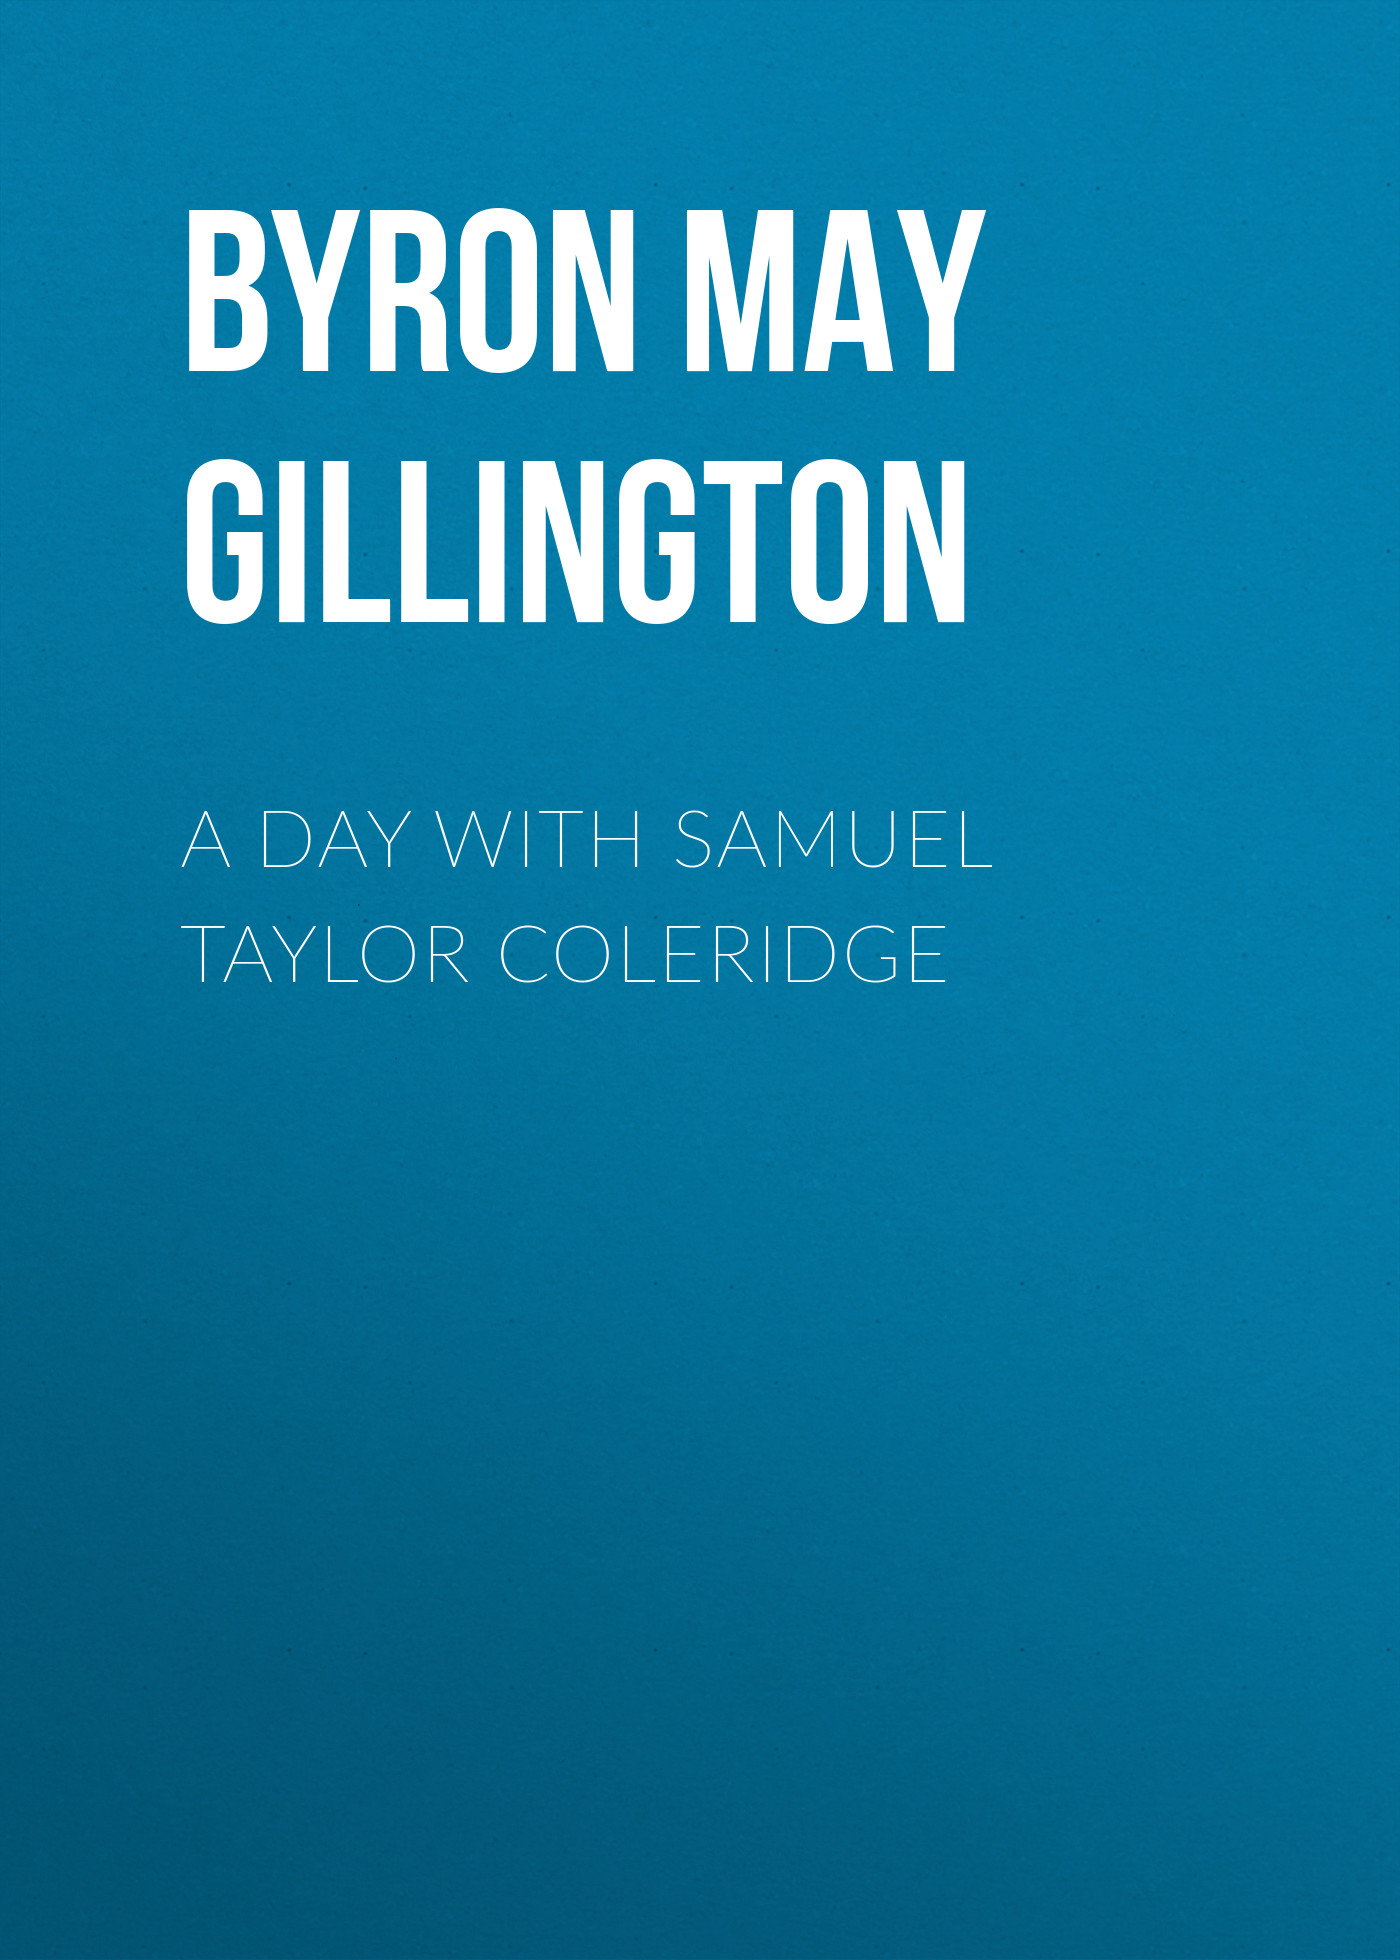 лучшая цена Byron May Clarissa Gillington A Day with Samuel Taylor Coleridge